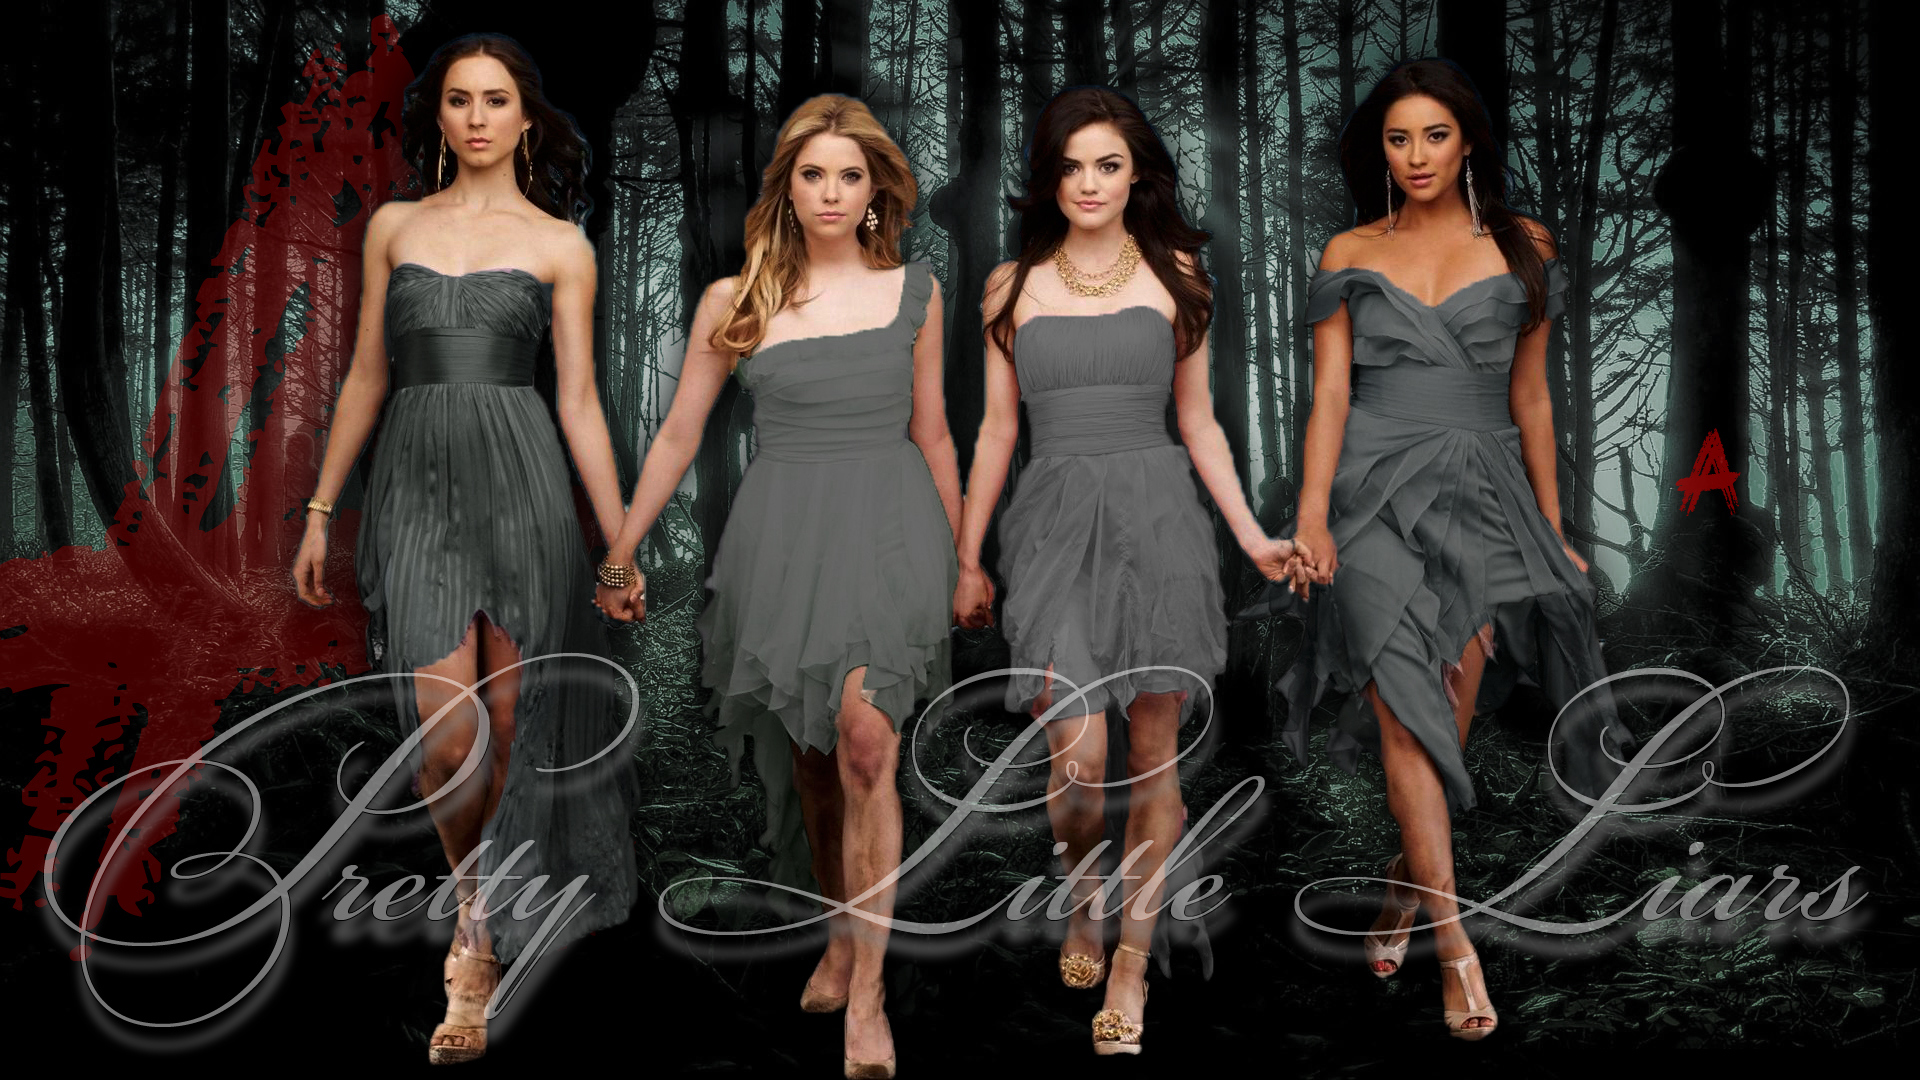 Pretty Little Liars Wallpapers High Resolution and Quality 1920x1080